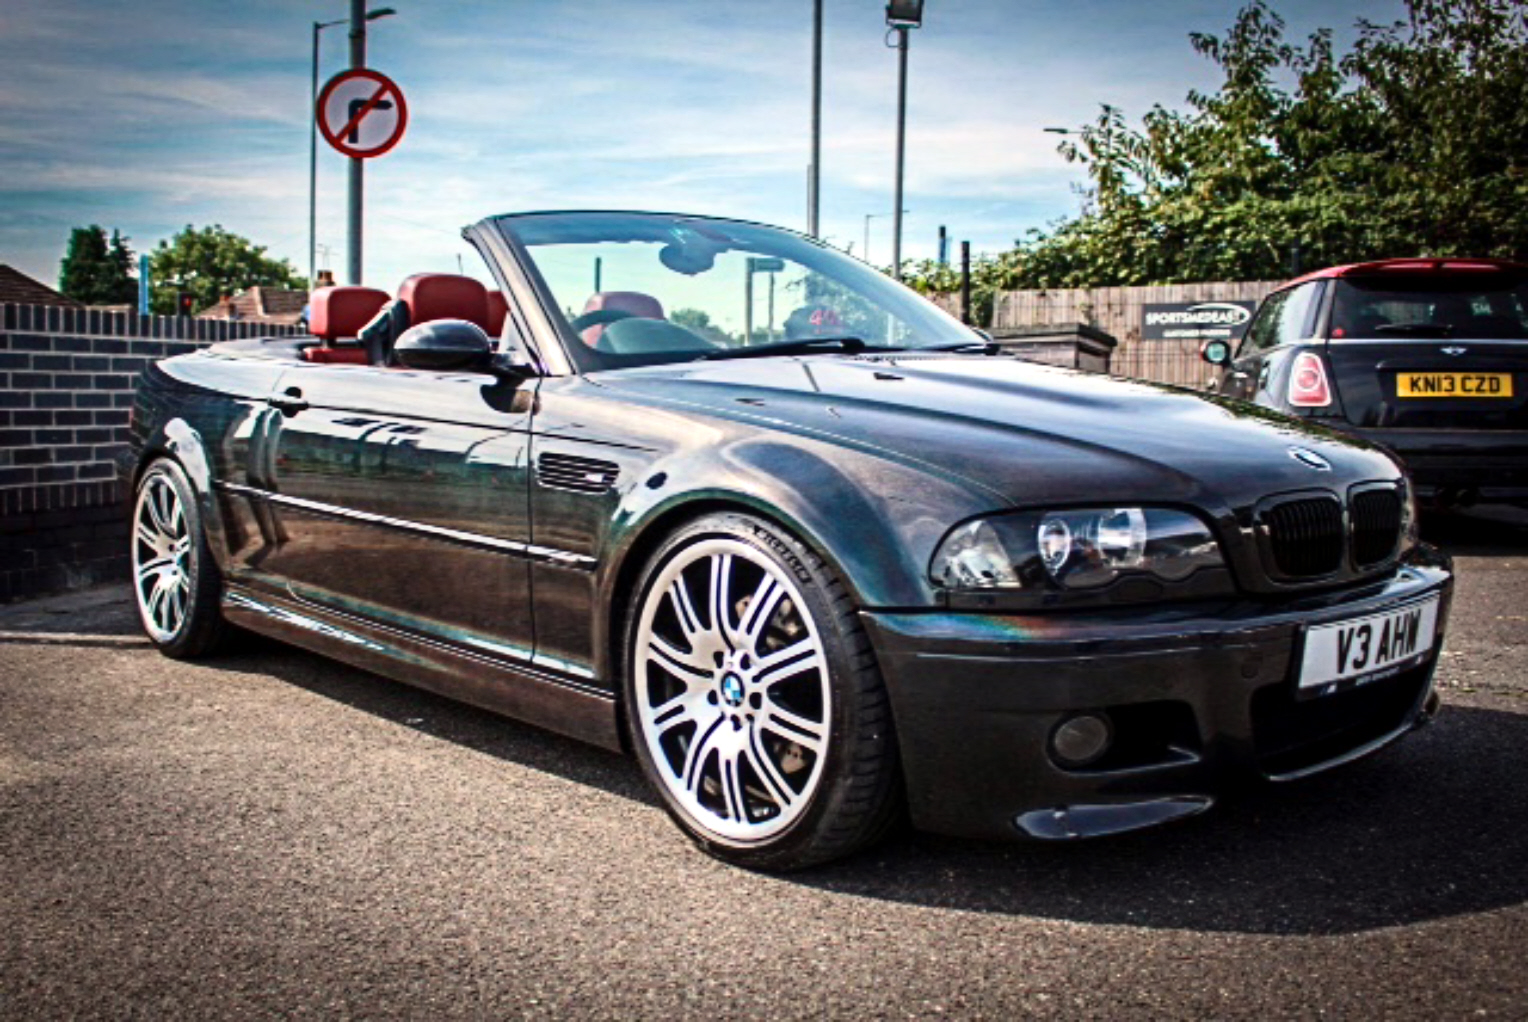 BMW M3 looking amazing